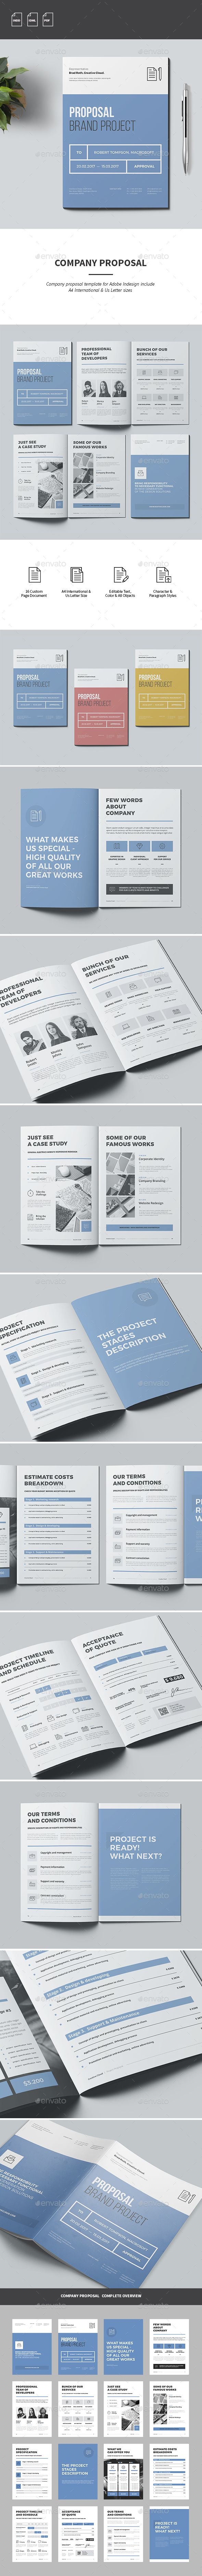 Proposal 122 best Business proposals images on